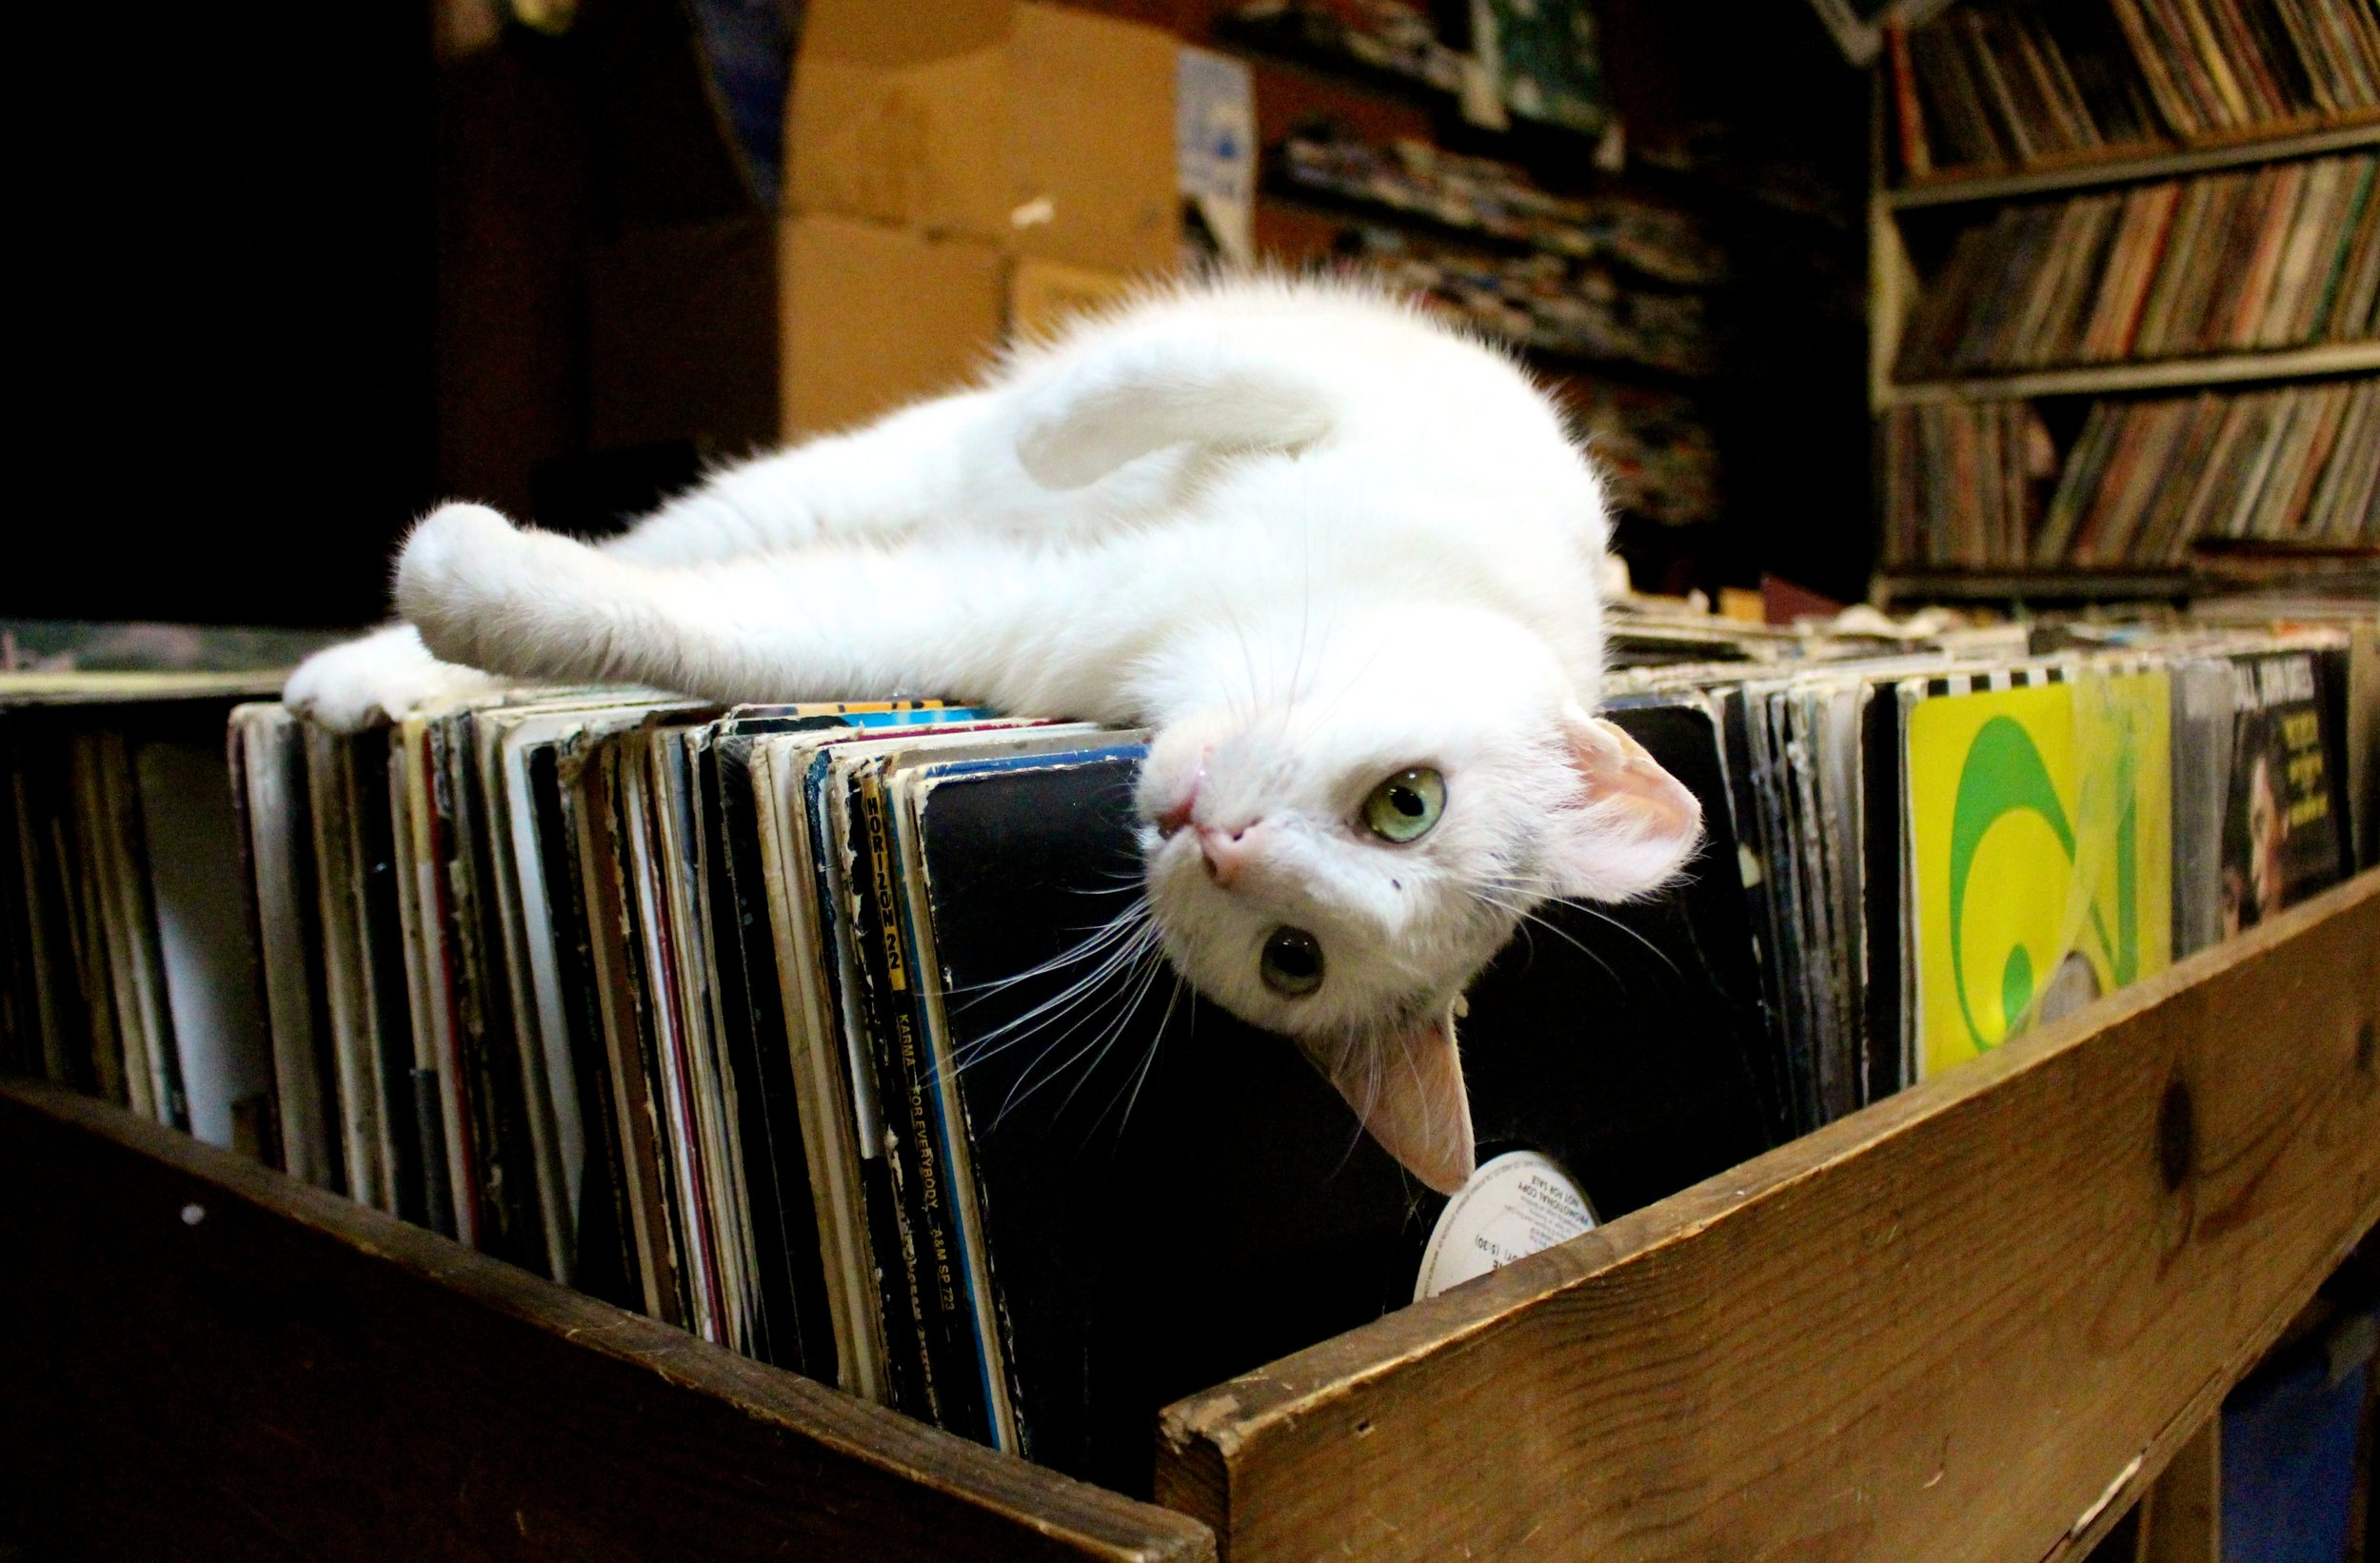 White Girl, the resident cat of Out of the Past Records, wakes up from a leisurely nap at her favorite spot: the top of record collection in the back of Aisle 2.